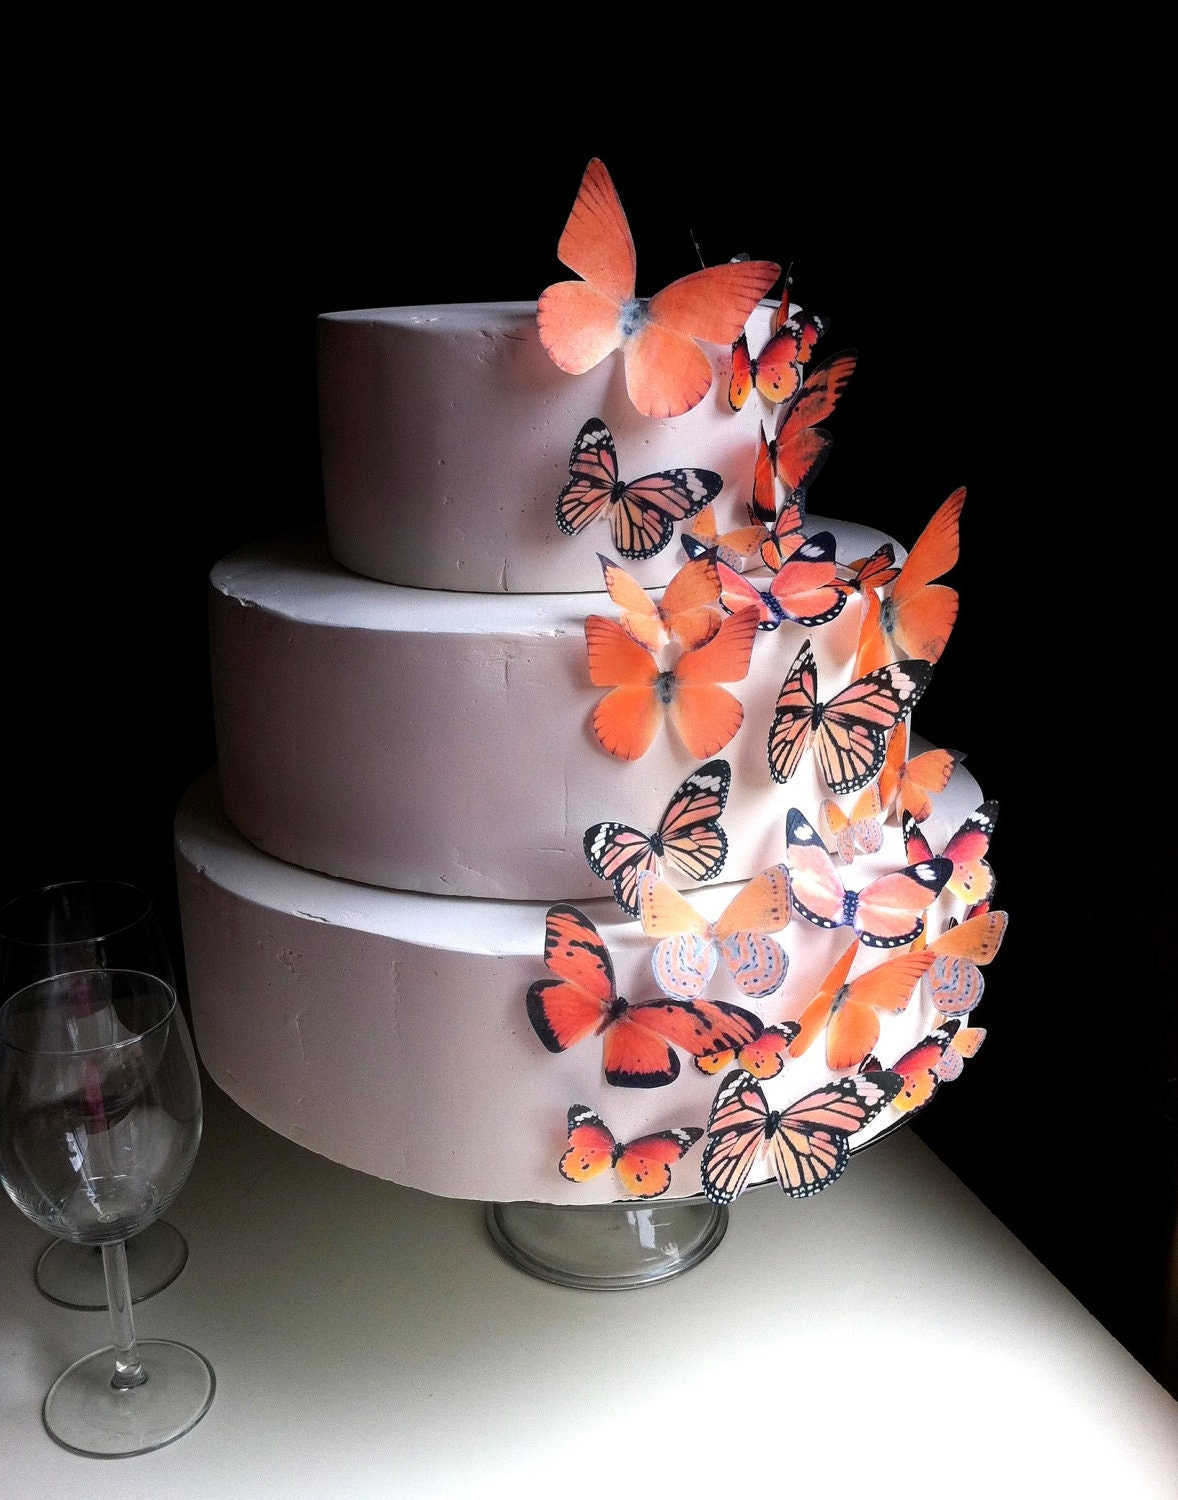 Edible Moss Cake Decoration : Edible Butterfly Cake Decoration Assorted Orange by SugarRobot